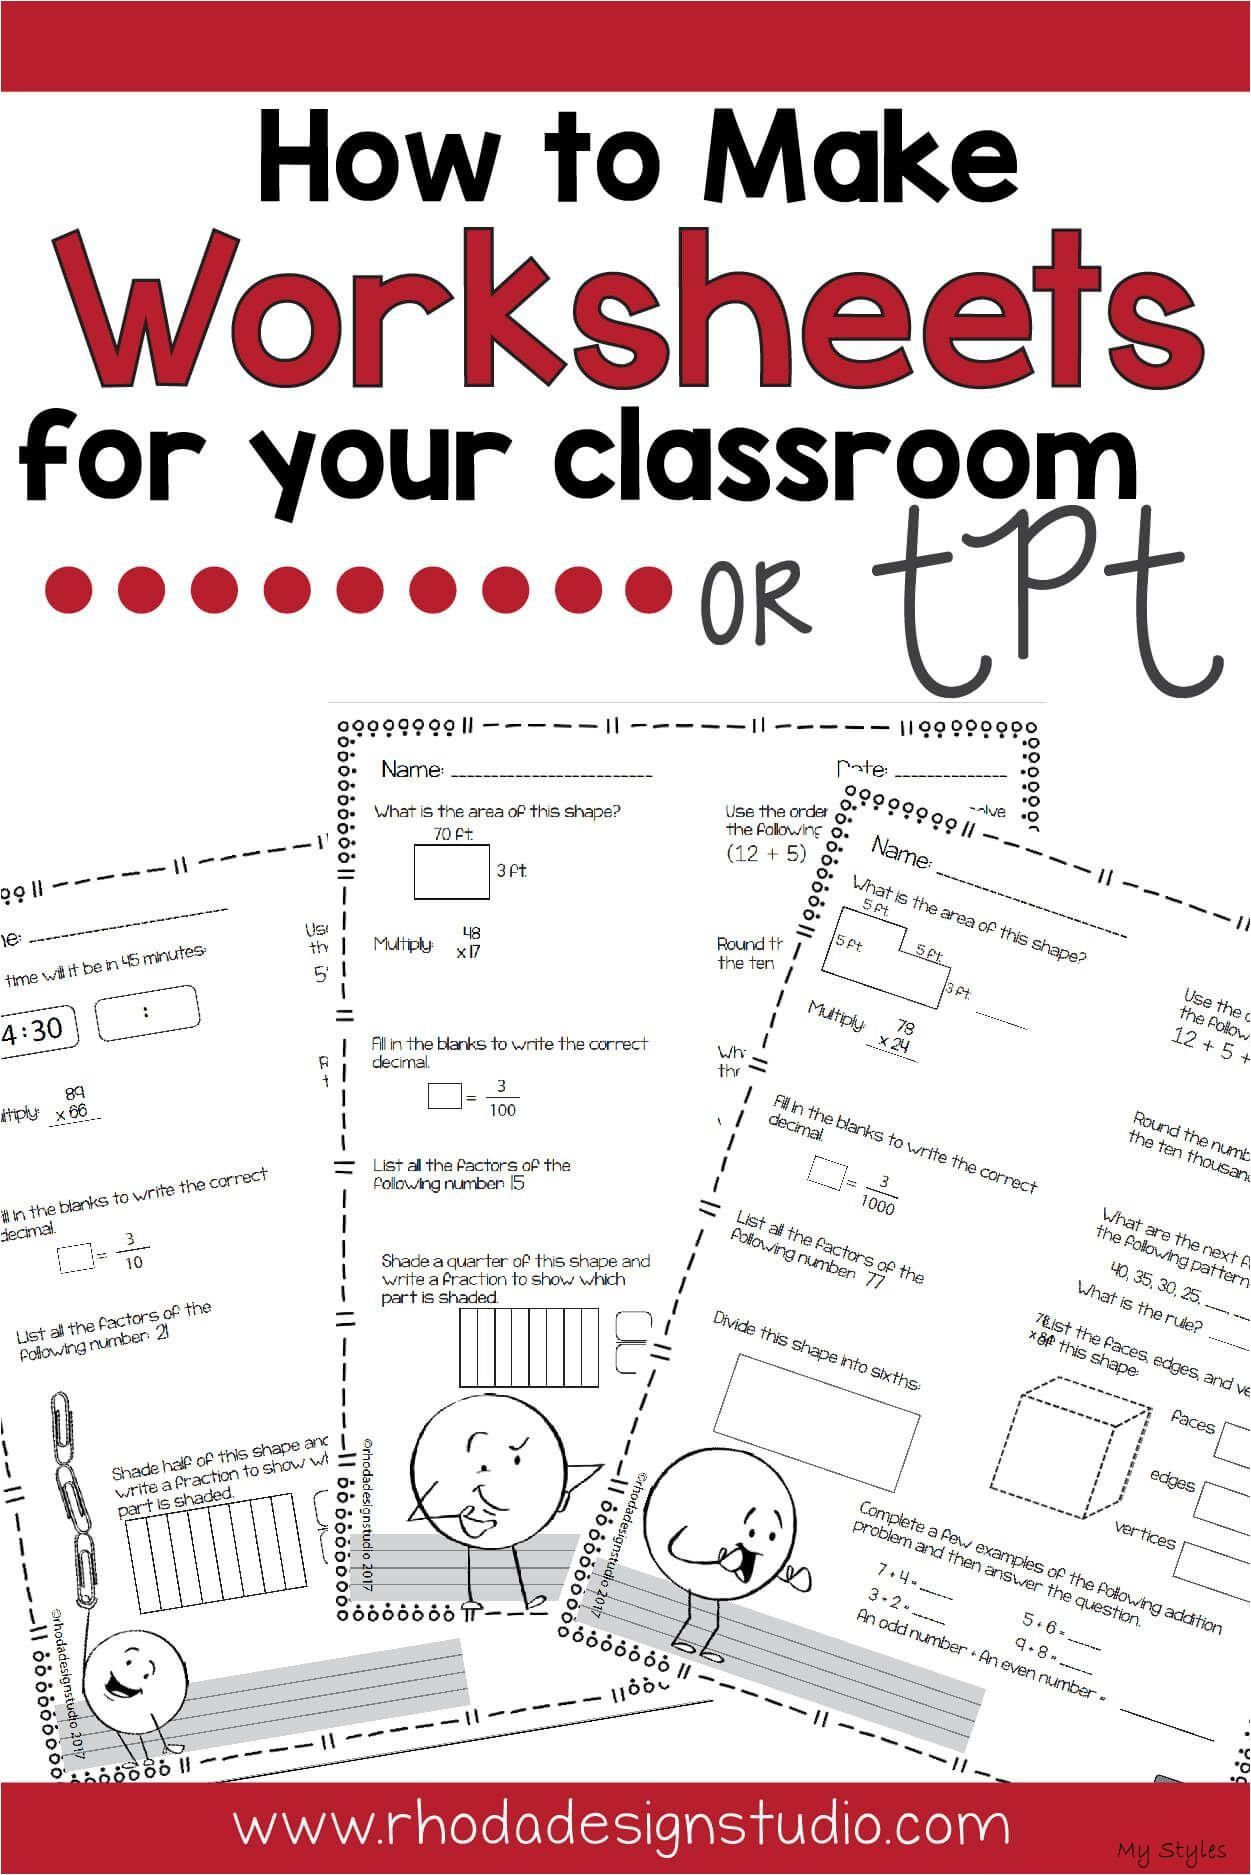 Oct 20 2018 Create Math Worksheets For Your Students And Use Them In Your Classroom Immediately Make W Math Worksheets Middle School Math Math Intervention [ 1875 x 1251 Pixel ]